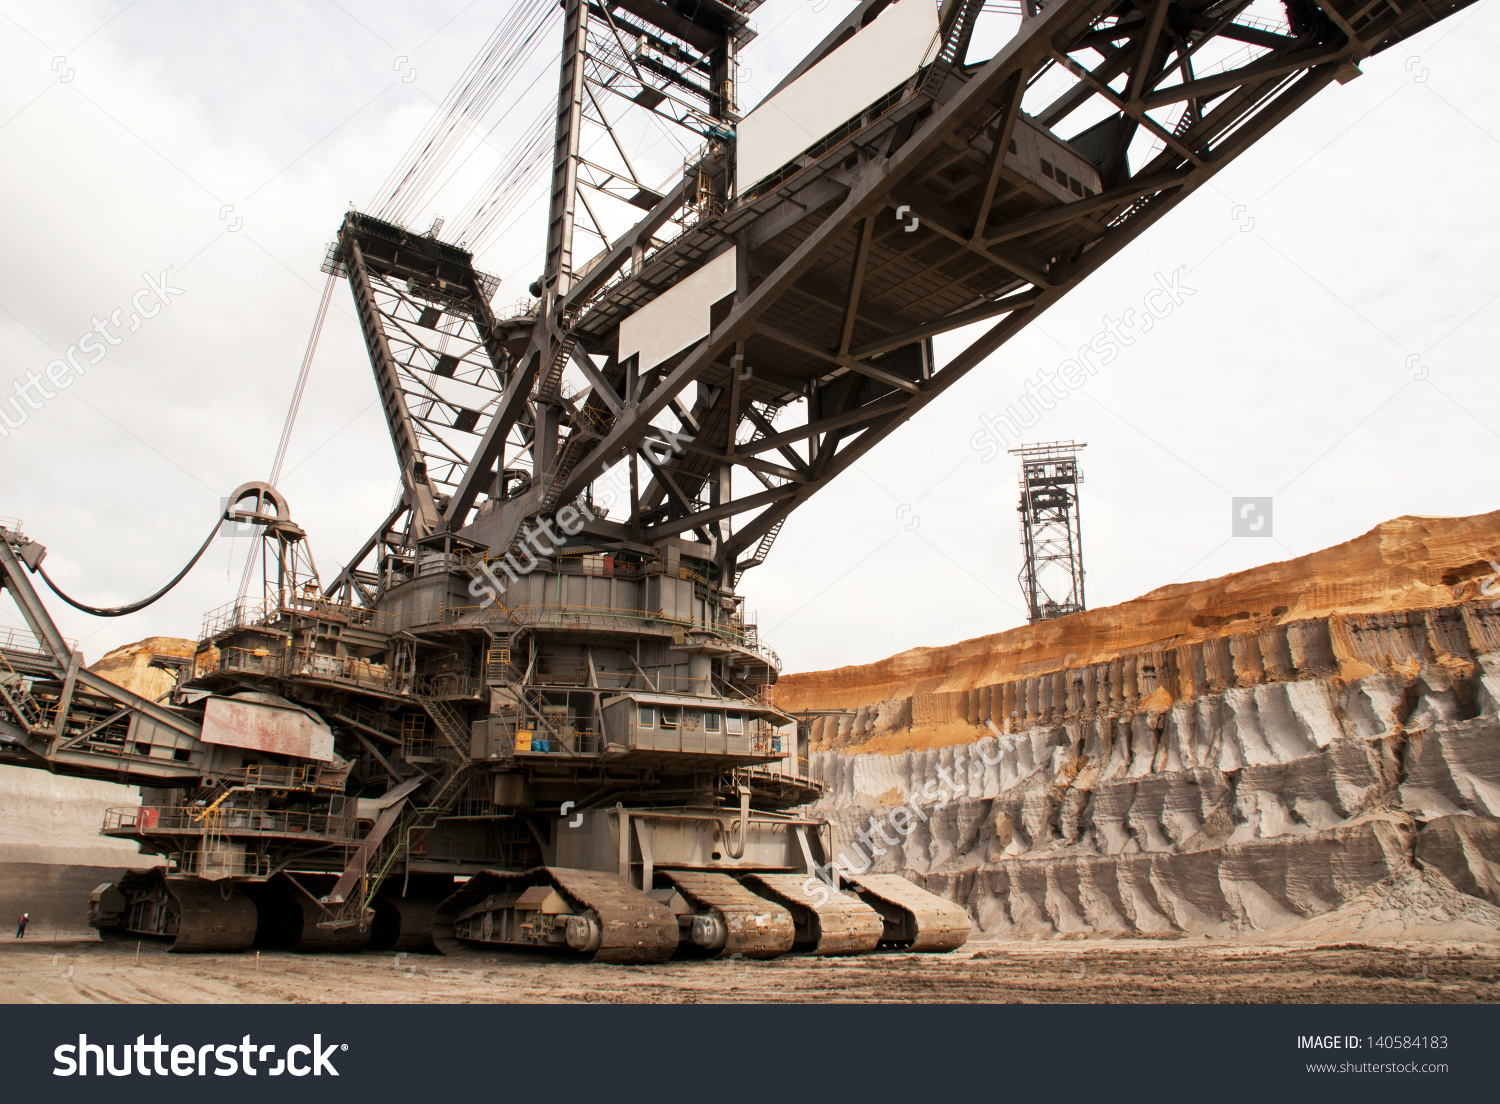 Giant Bucket Wheel Excavator Digging Lignite Stock Photo 140584183.